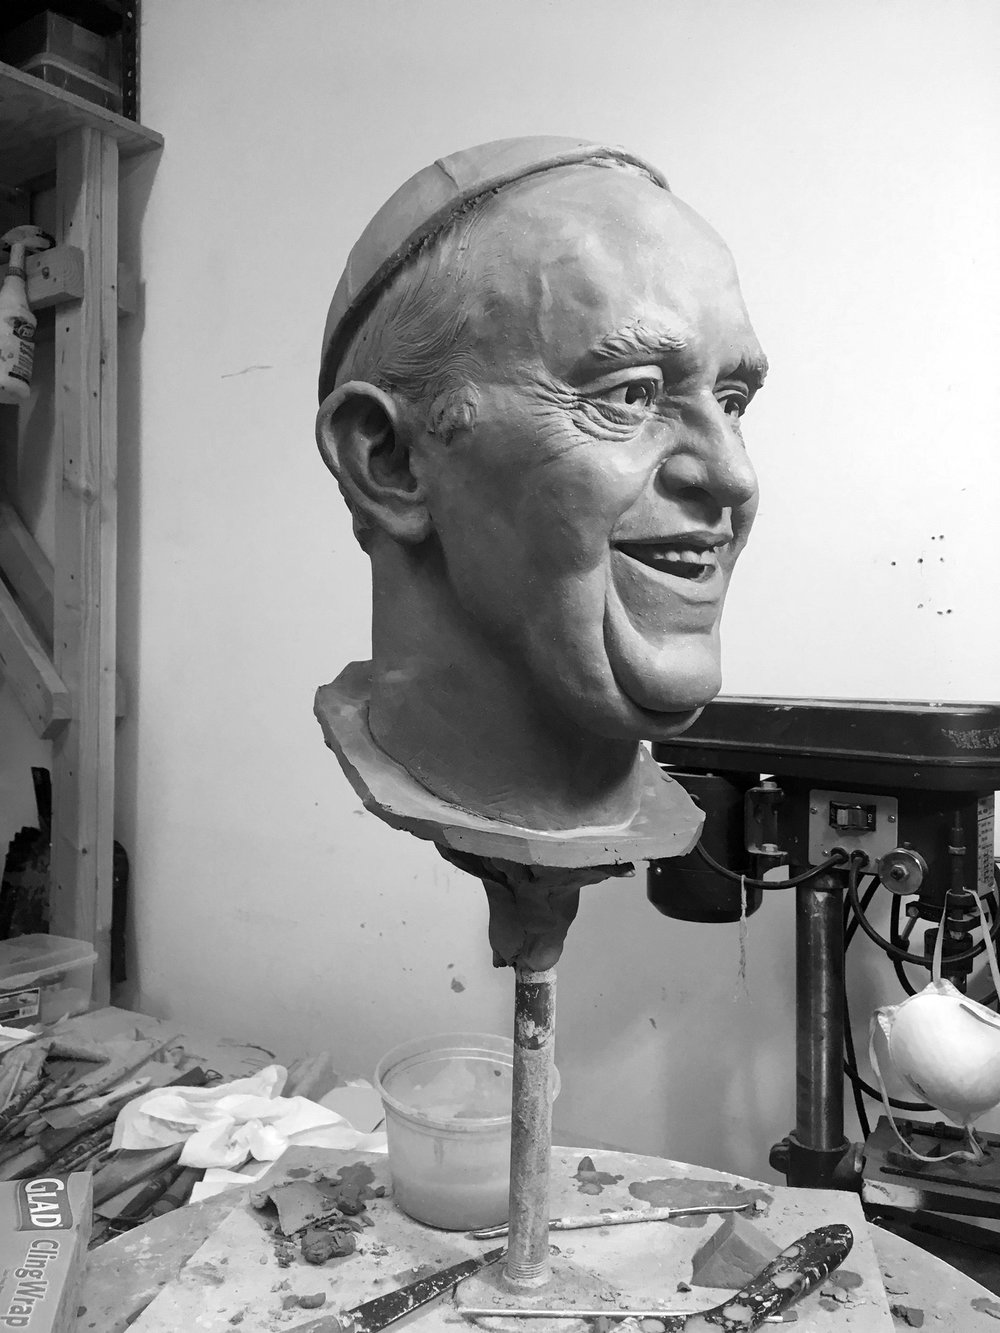 Pope Francis Portrait in Clay